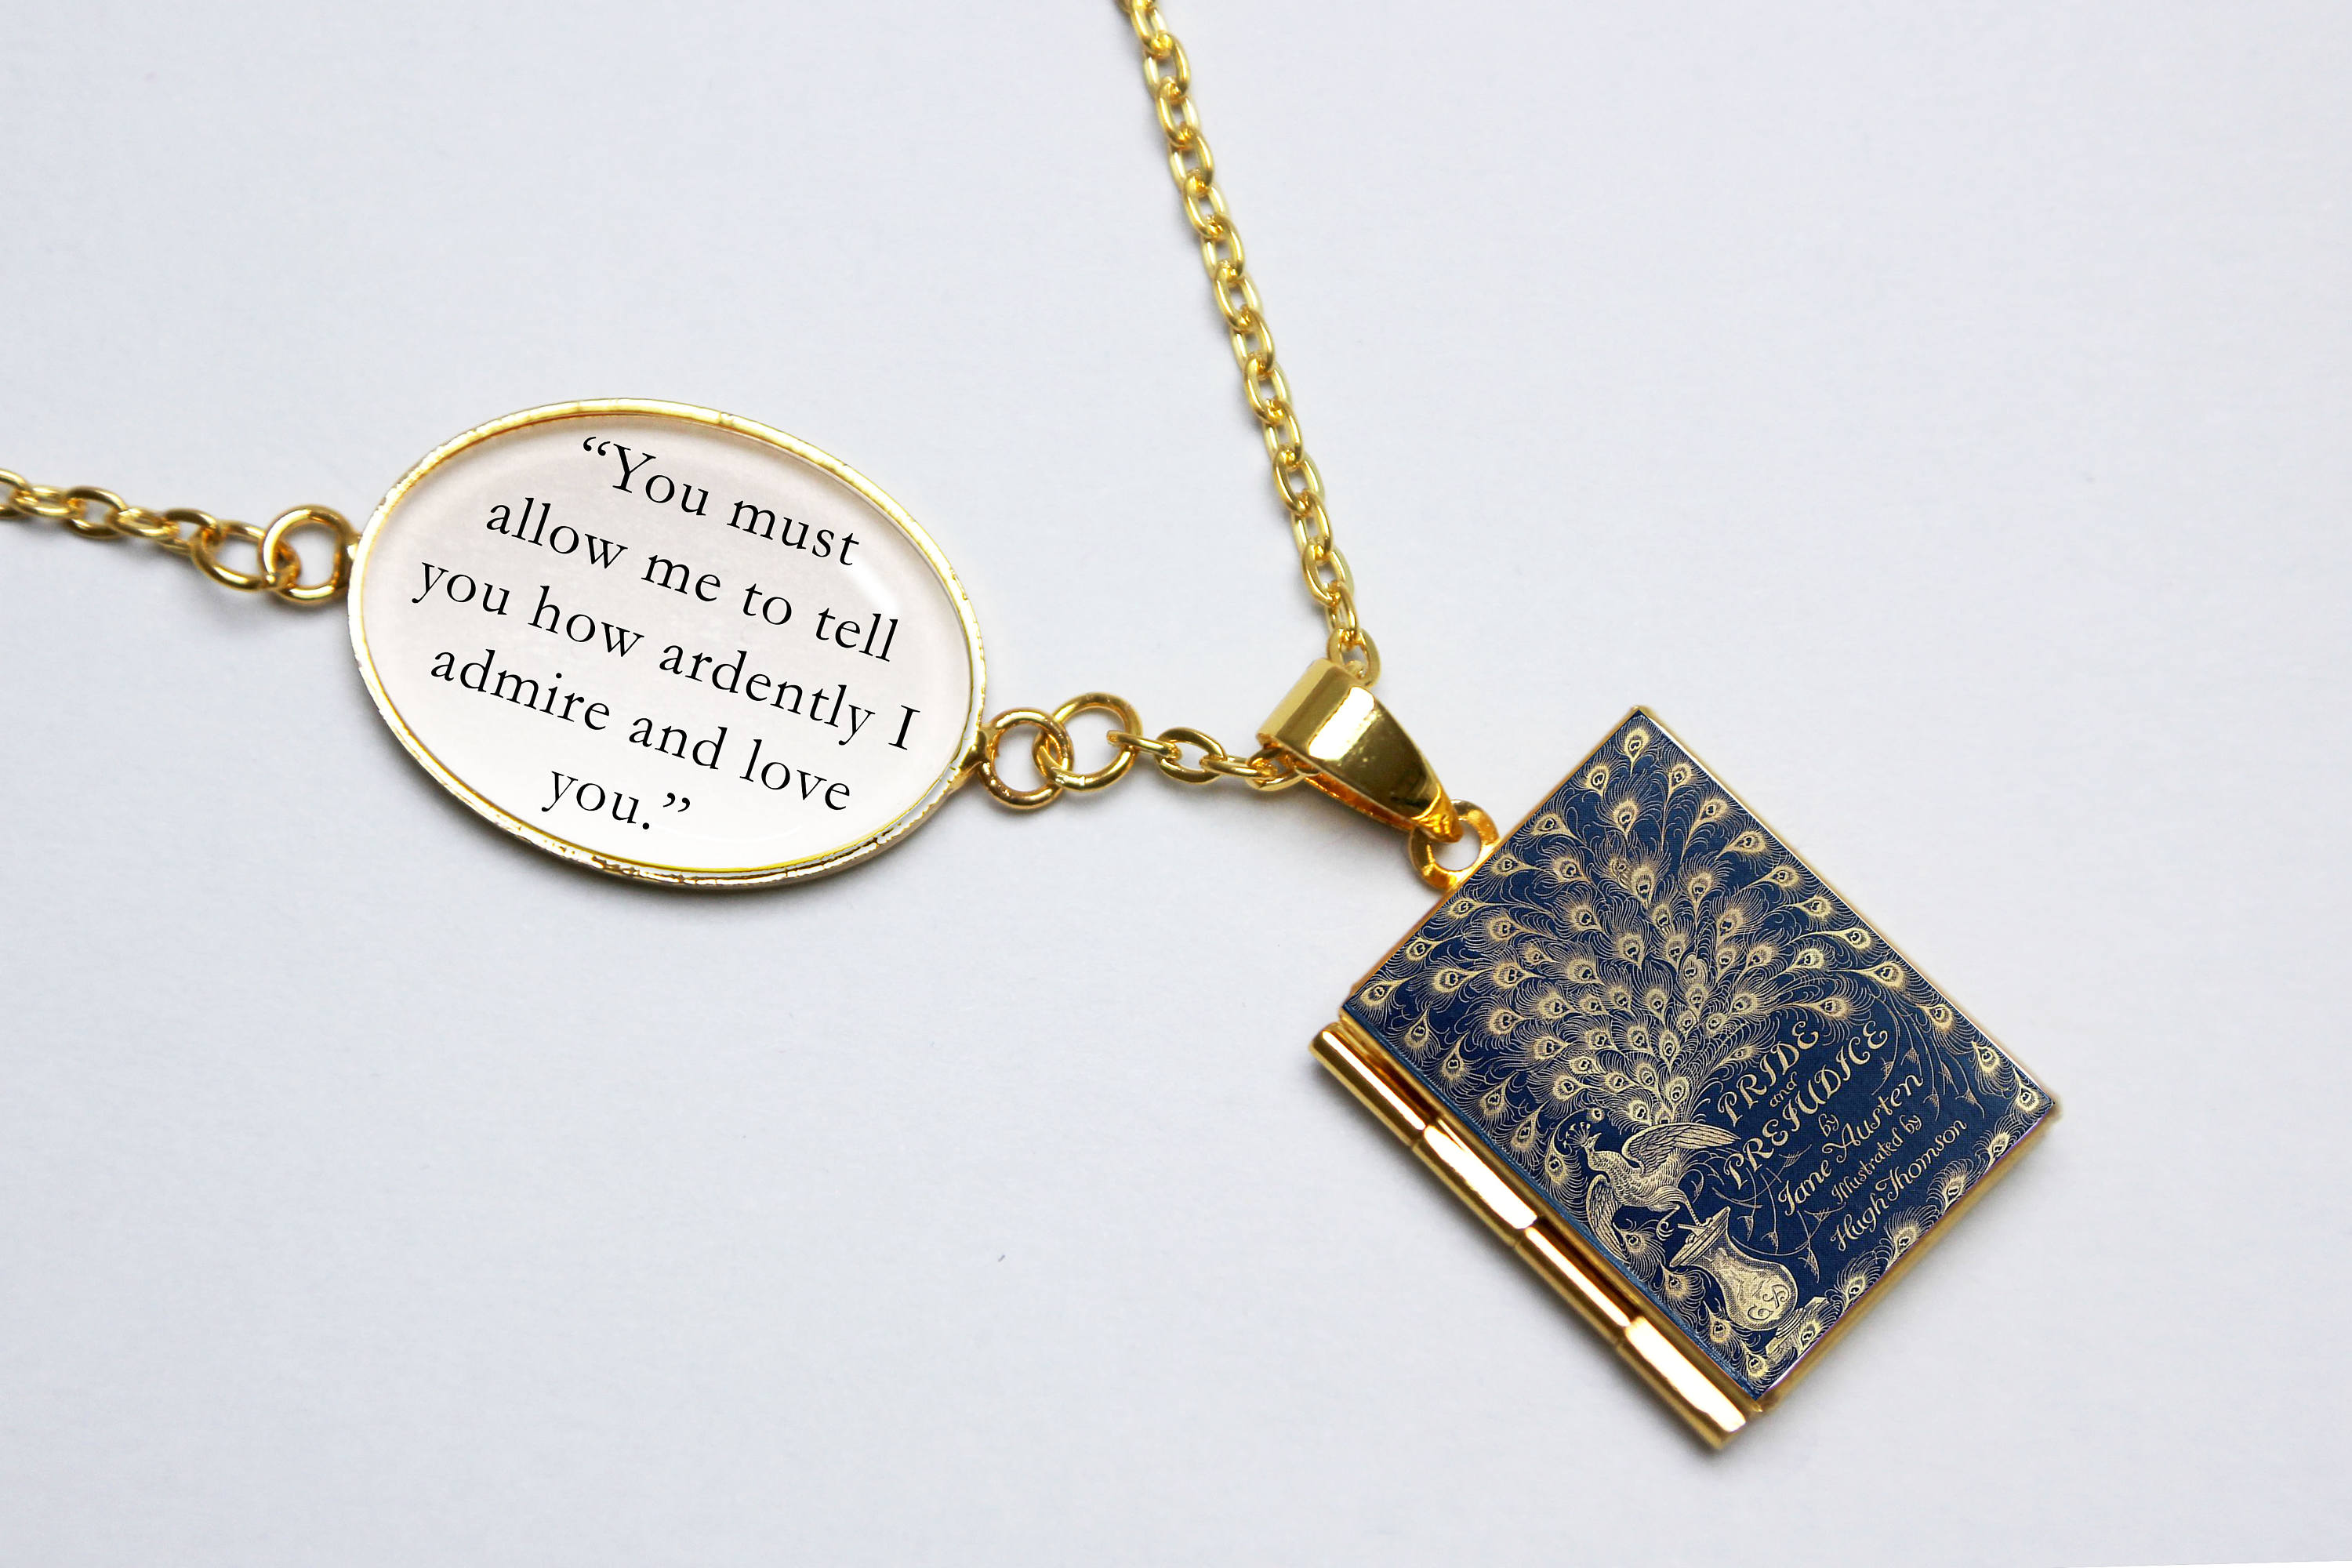 Charming Locket Necklace,Beautiful Locket Necklace,So it goes So it goes Locket Necklace Quote Locket Pendant Literary Jewelry Literary Jewelry Literature Lover Gift